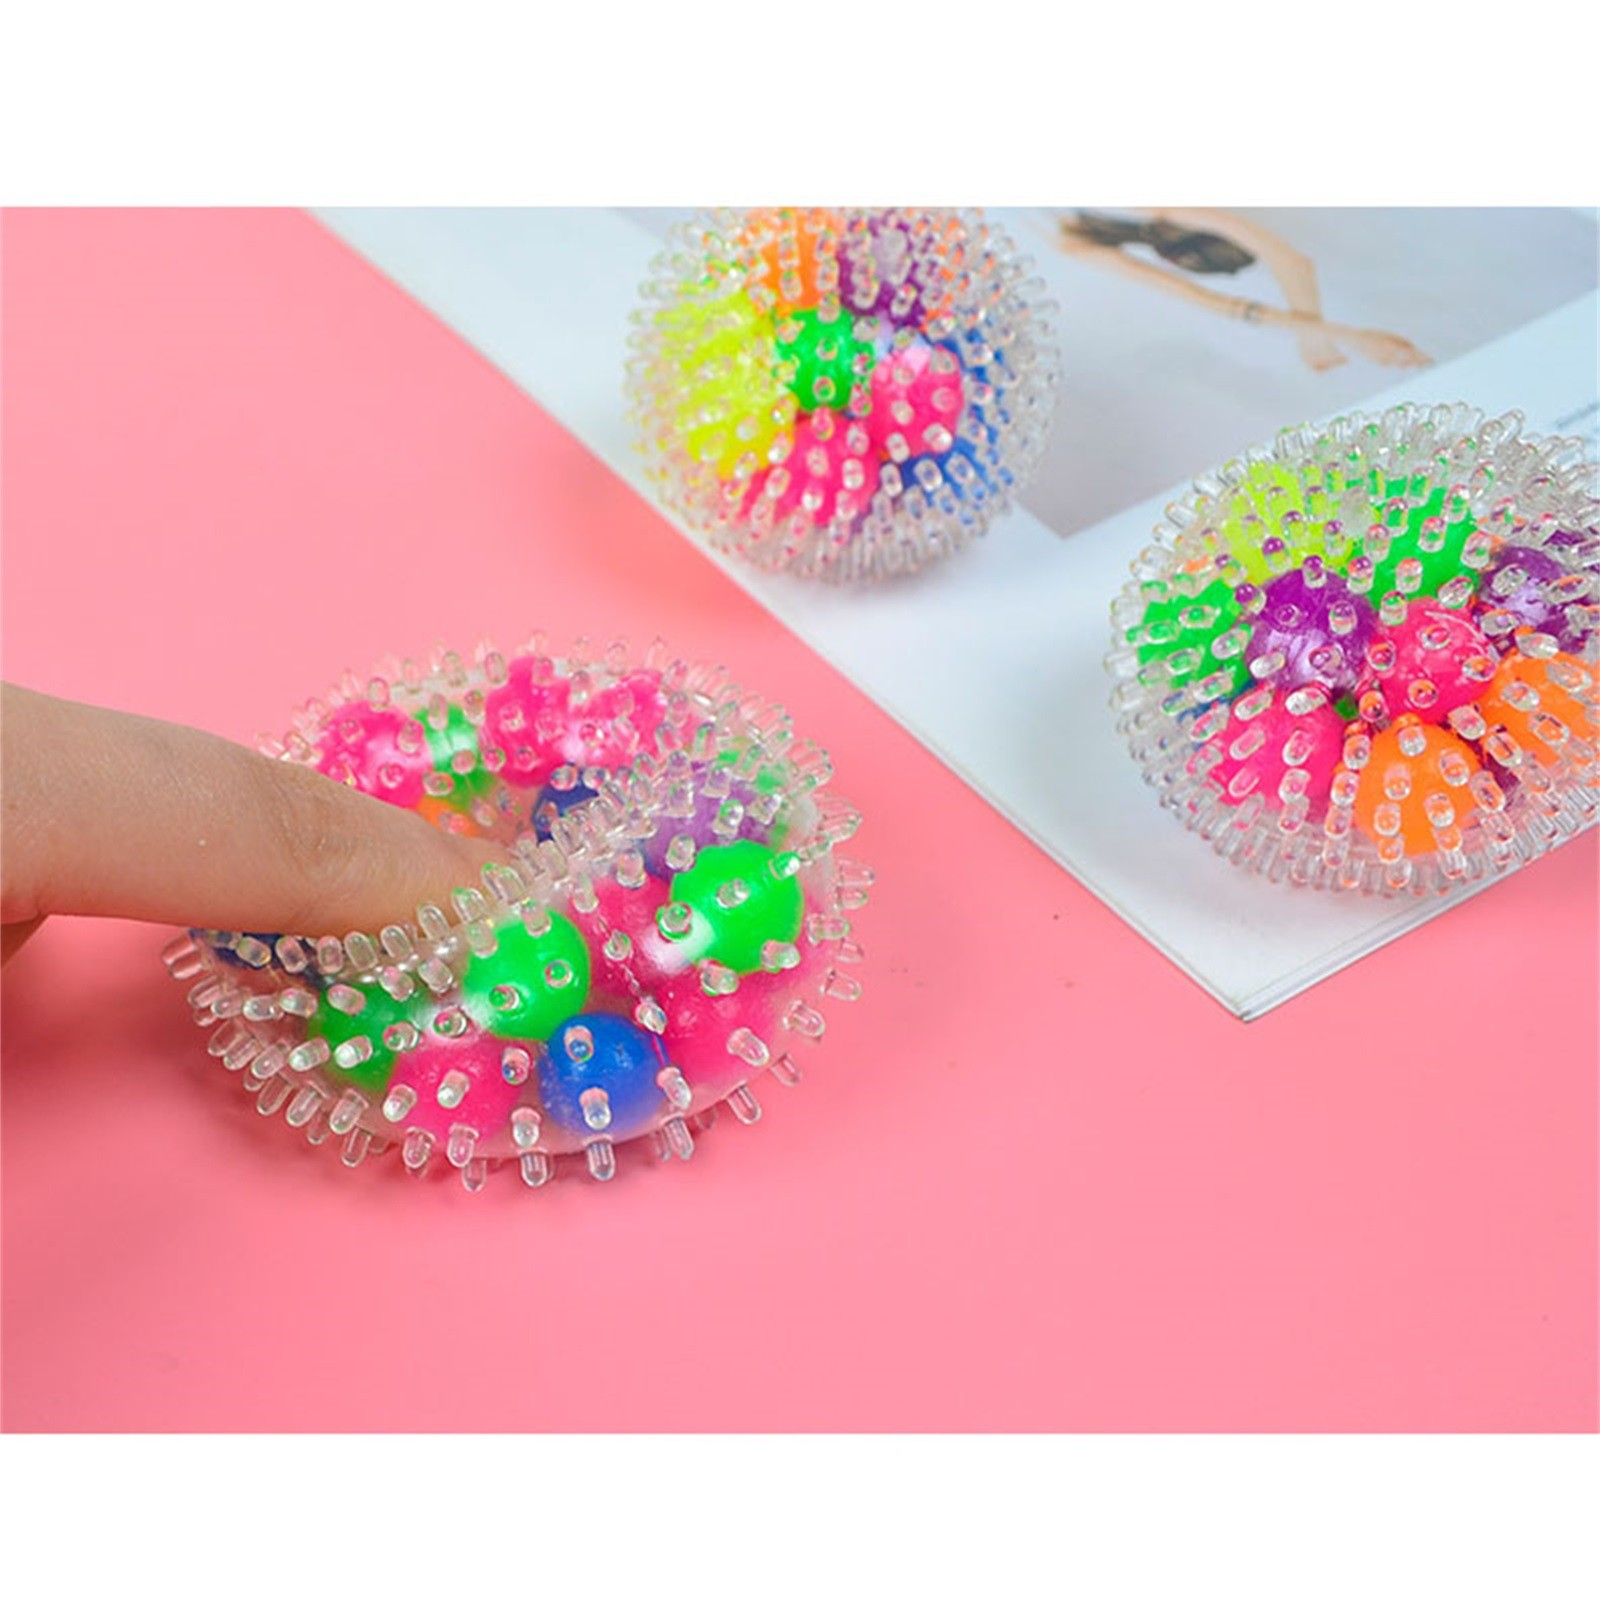 Toy Pressure-Toy Stress Adults for Kids Funny 10PCS Rainbow-Ball Spongy Squeezable Colorful img5